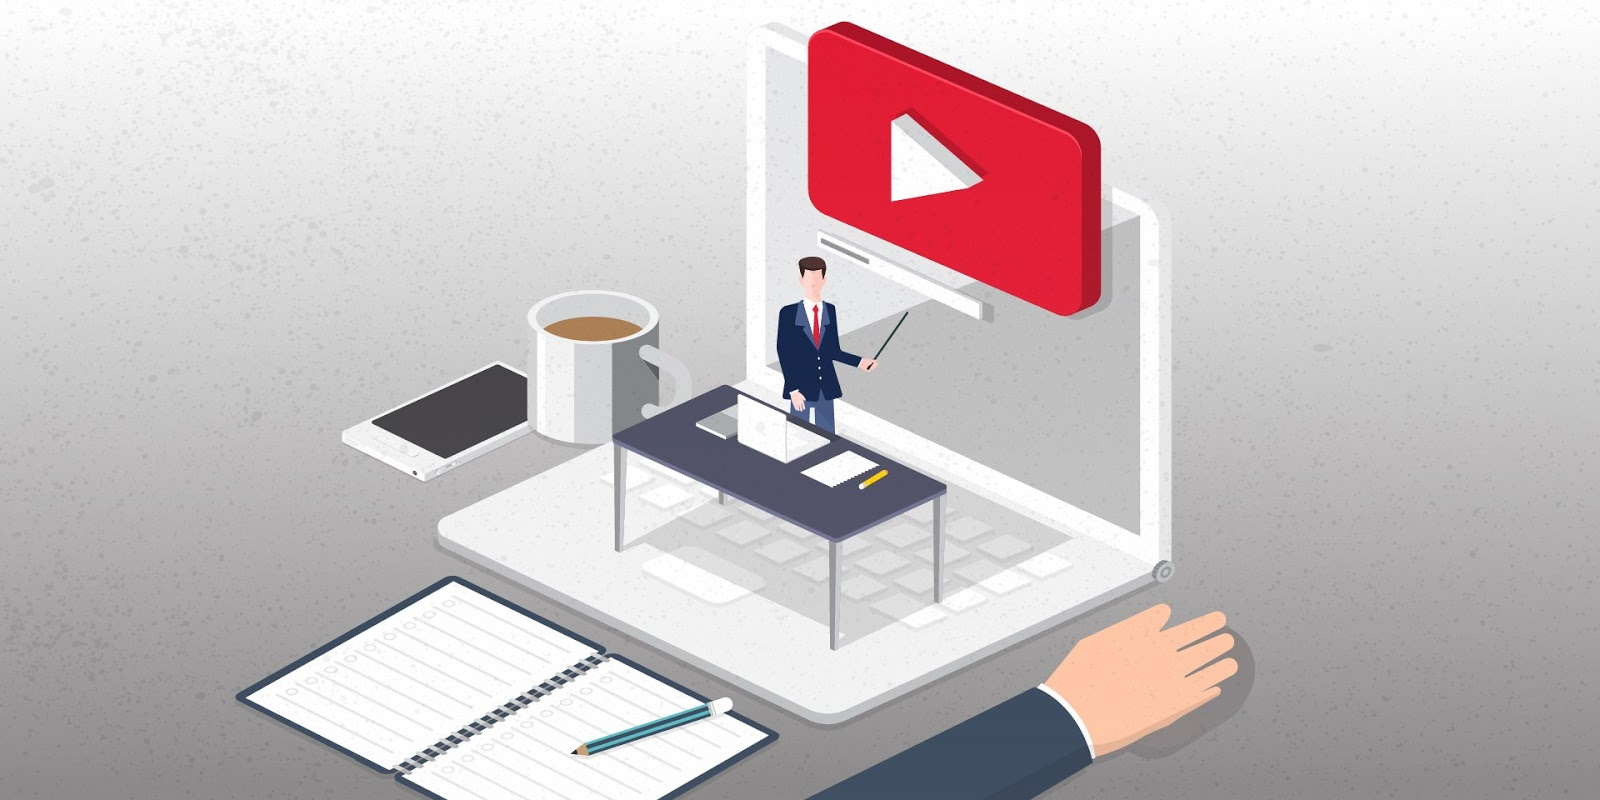 Sukses 2018 Rahasia Lengkap Bermain Youtube Lots Of Creators Who Have Achieved Success From Their Hard Work In Creative Thinking And Participate Developing Video Watch Quality On The